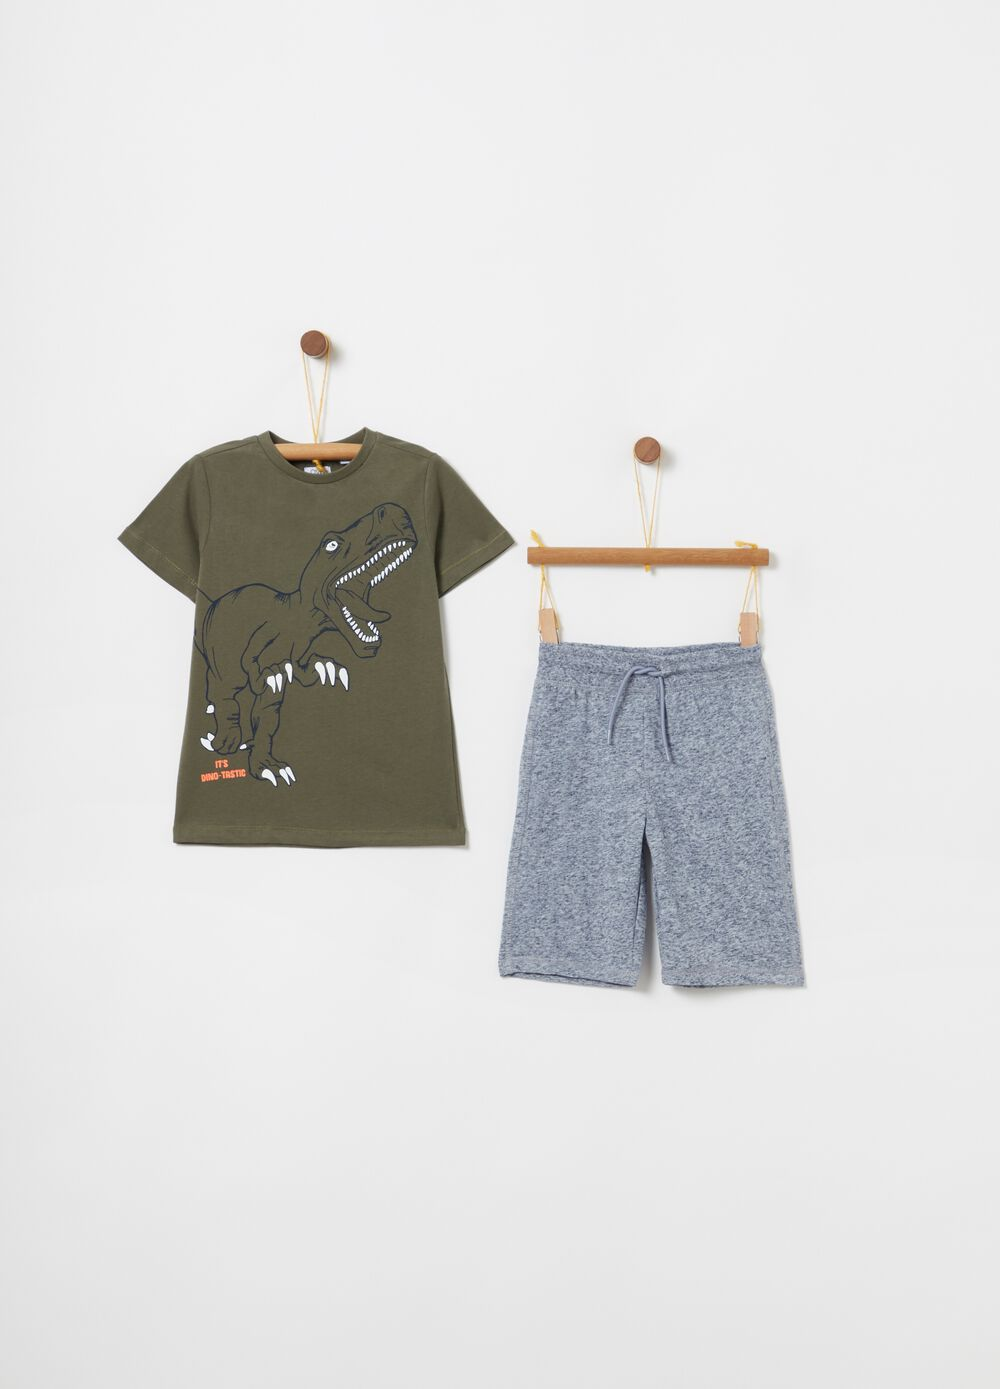 Mélange jogging set with T-shirt and shorts